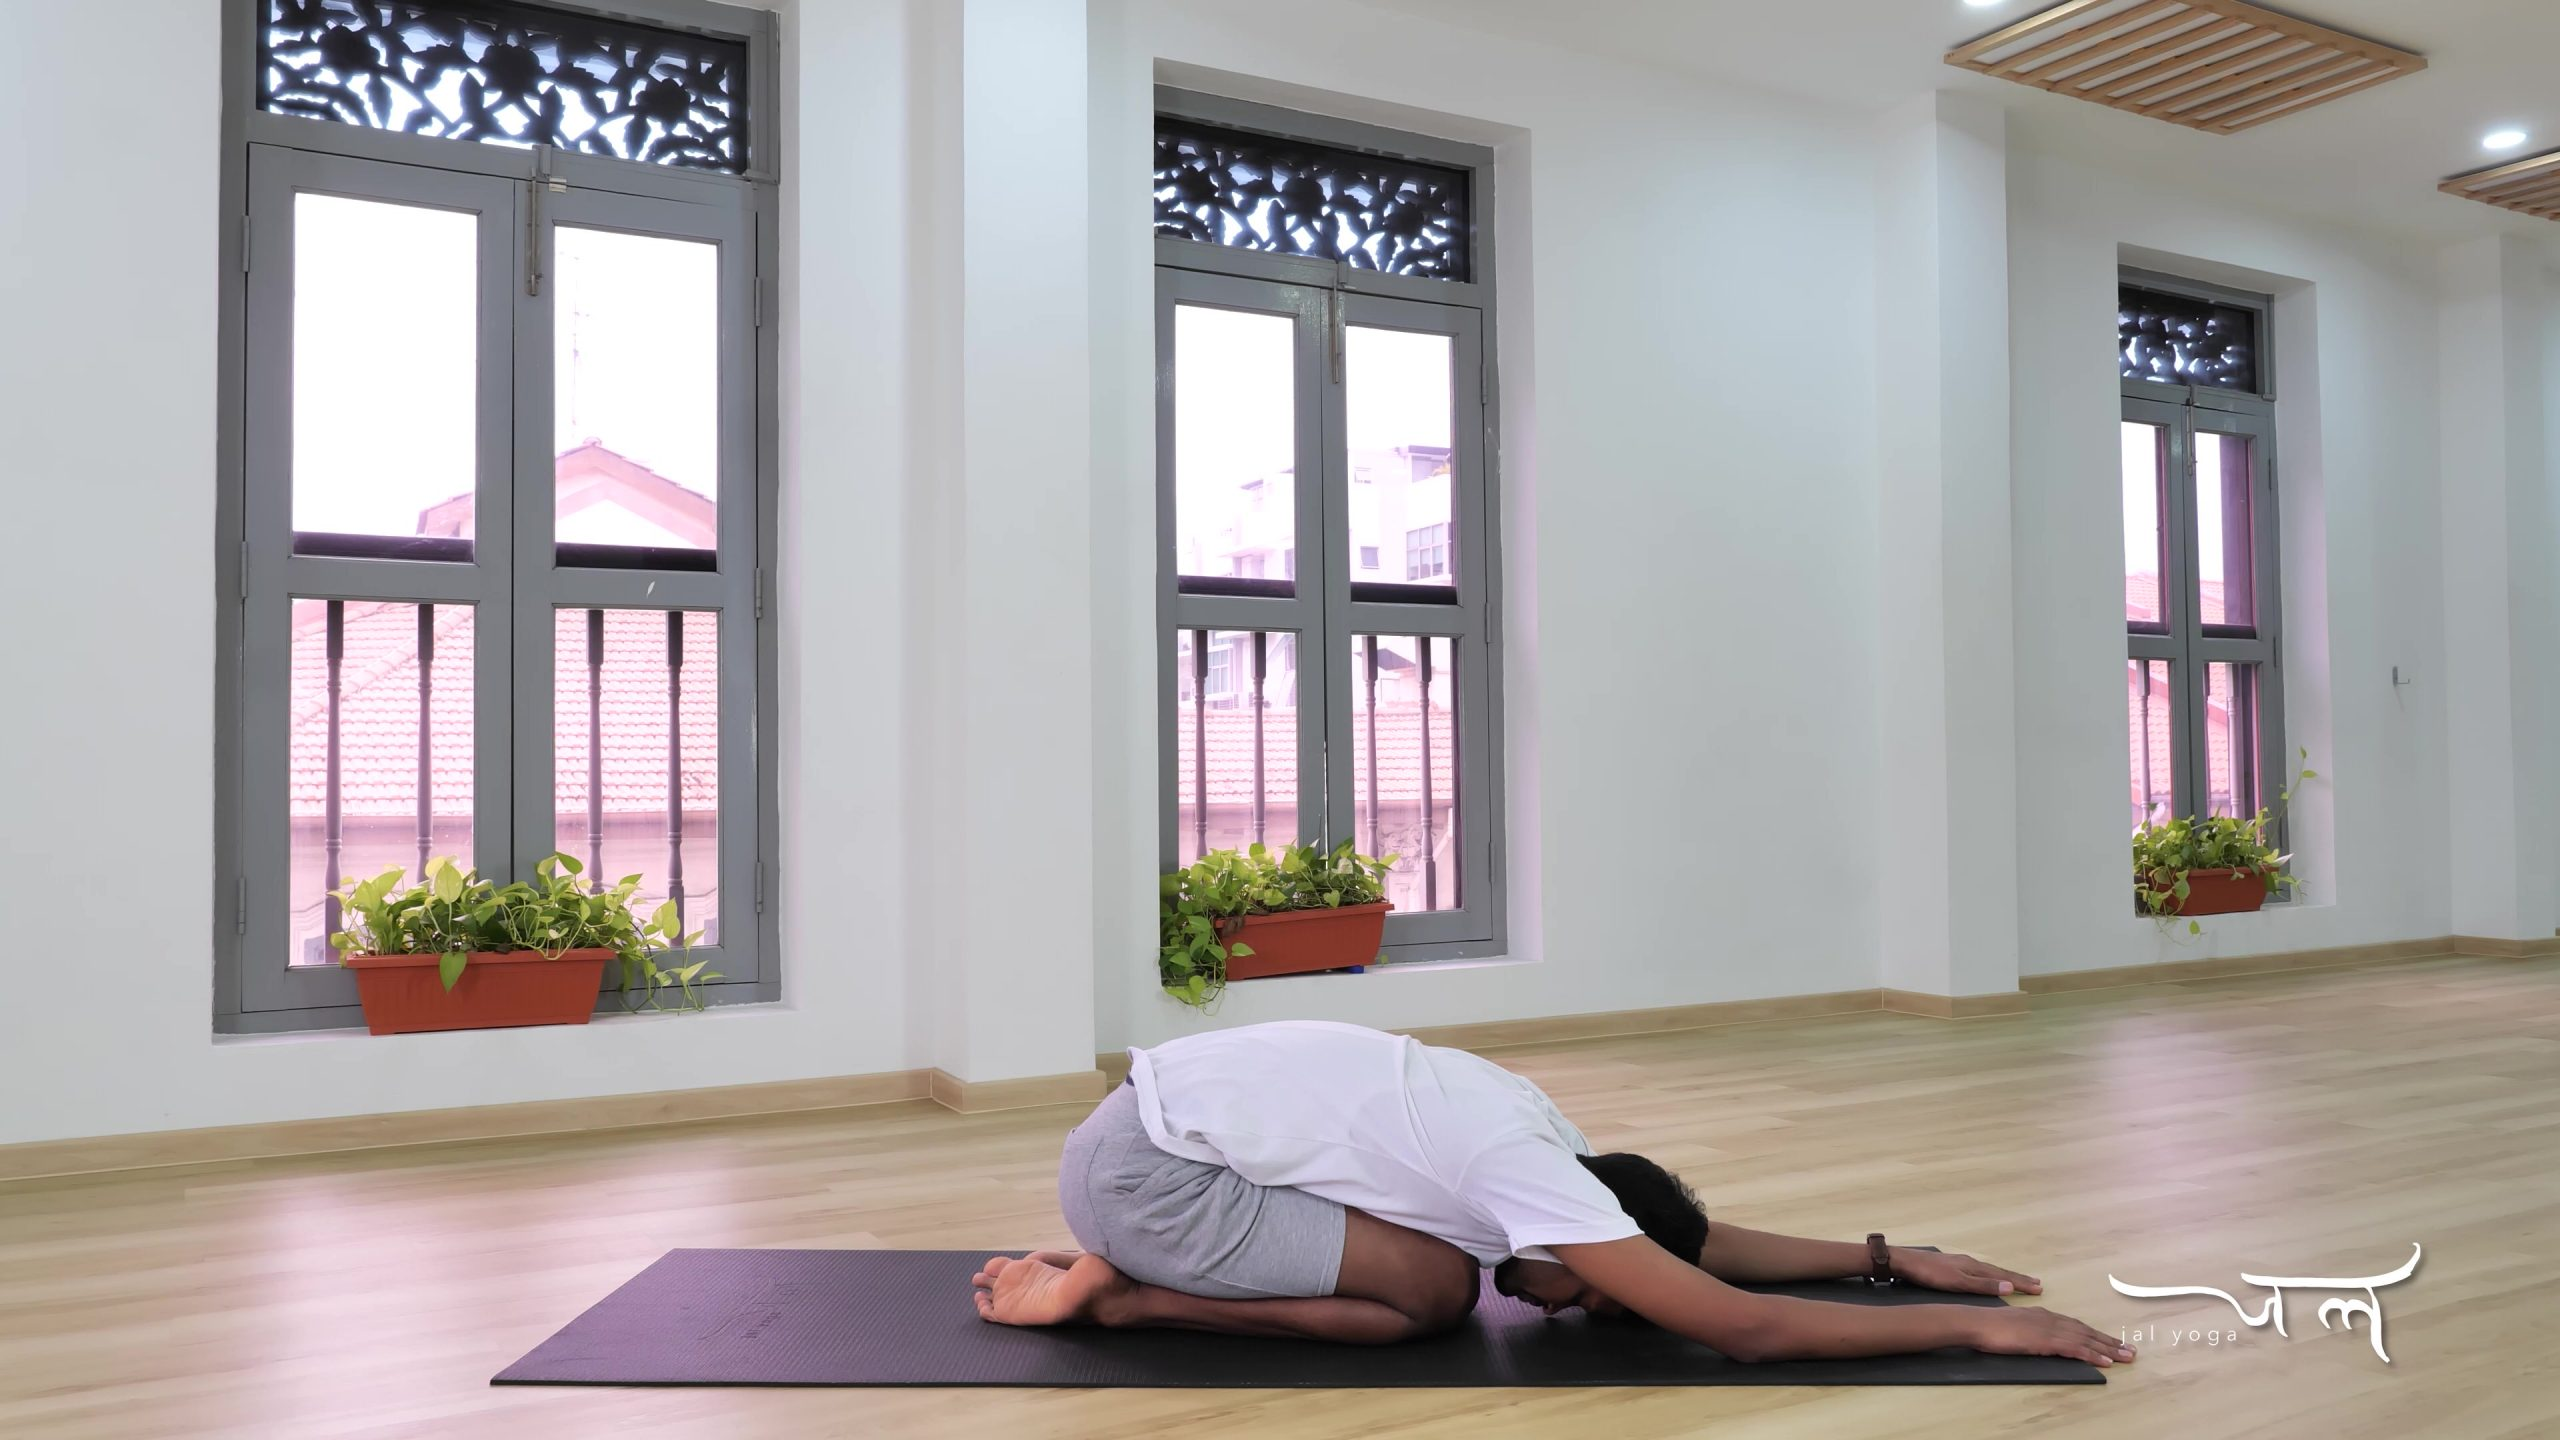 Child Pose   Yoga Therapy for Better Sleep   Manage Sleep Disorders